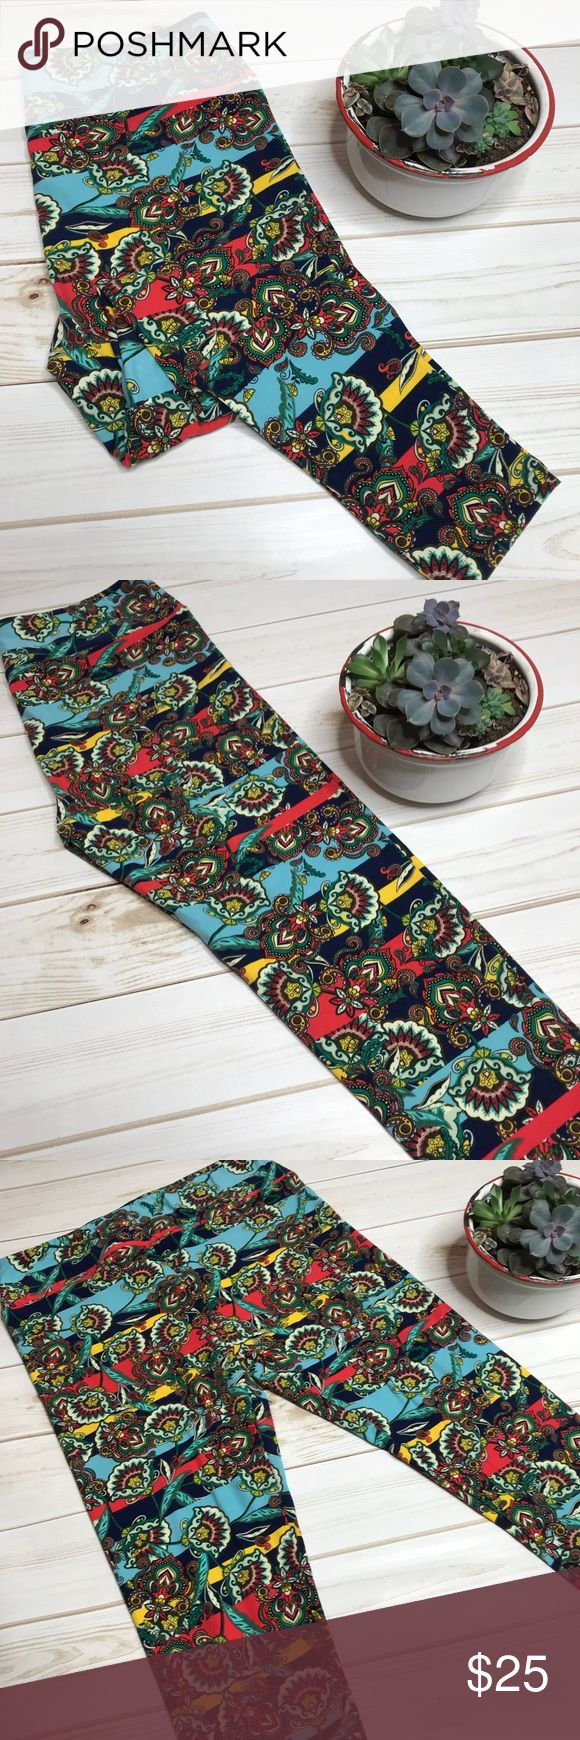 NWT LuLaRoe TC Leggings These stunning leggings have a gorgeous floral print with a stripe. Red, blue yellow, green and cream take center focus on these beauties. Known for their buttery soft feel, LuLaRoe has made leggings not just tights, but pants too! Comfort meets fashion! These tall and curves leggings will fit size 12-18. LuLaRoe Pants Leggings